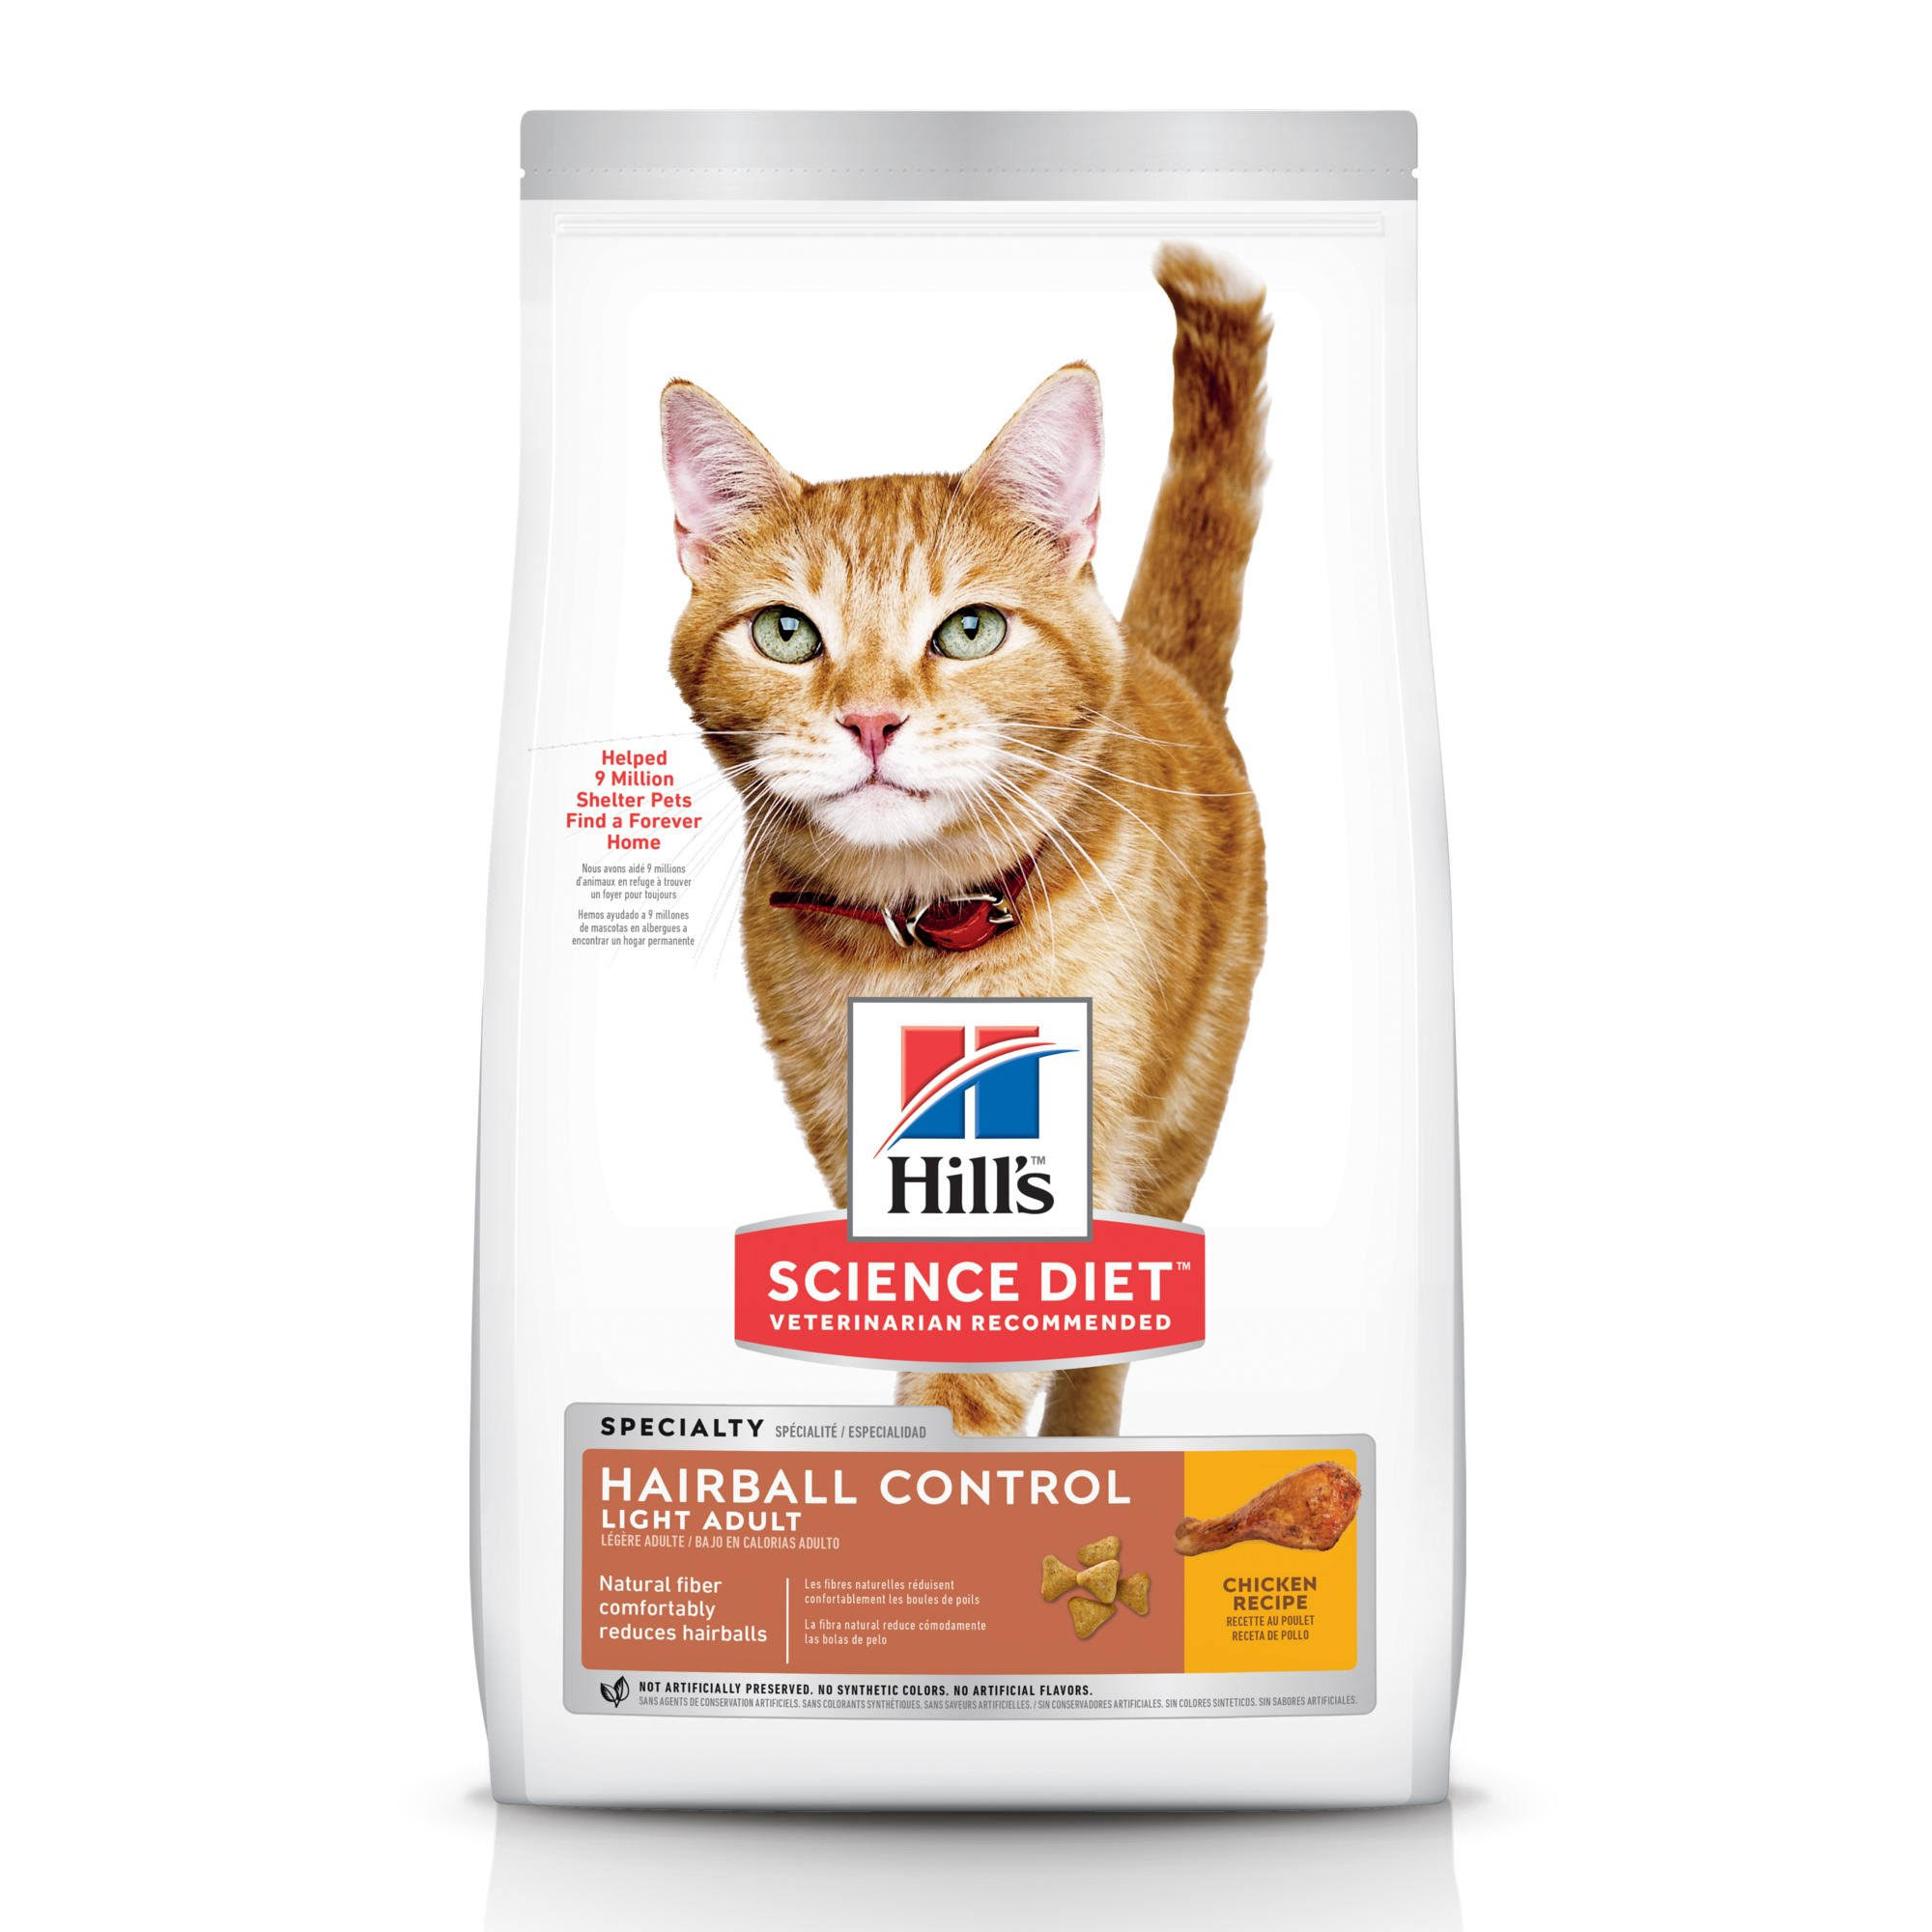 Hill's Science Diet Hairball Control Light Chicken Recipe Premium Cat Food Adult - 15.5 lb